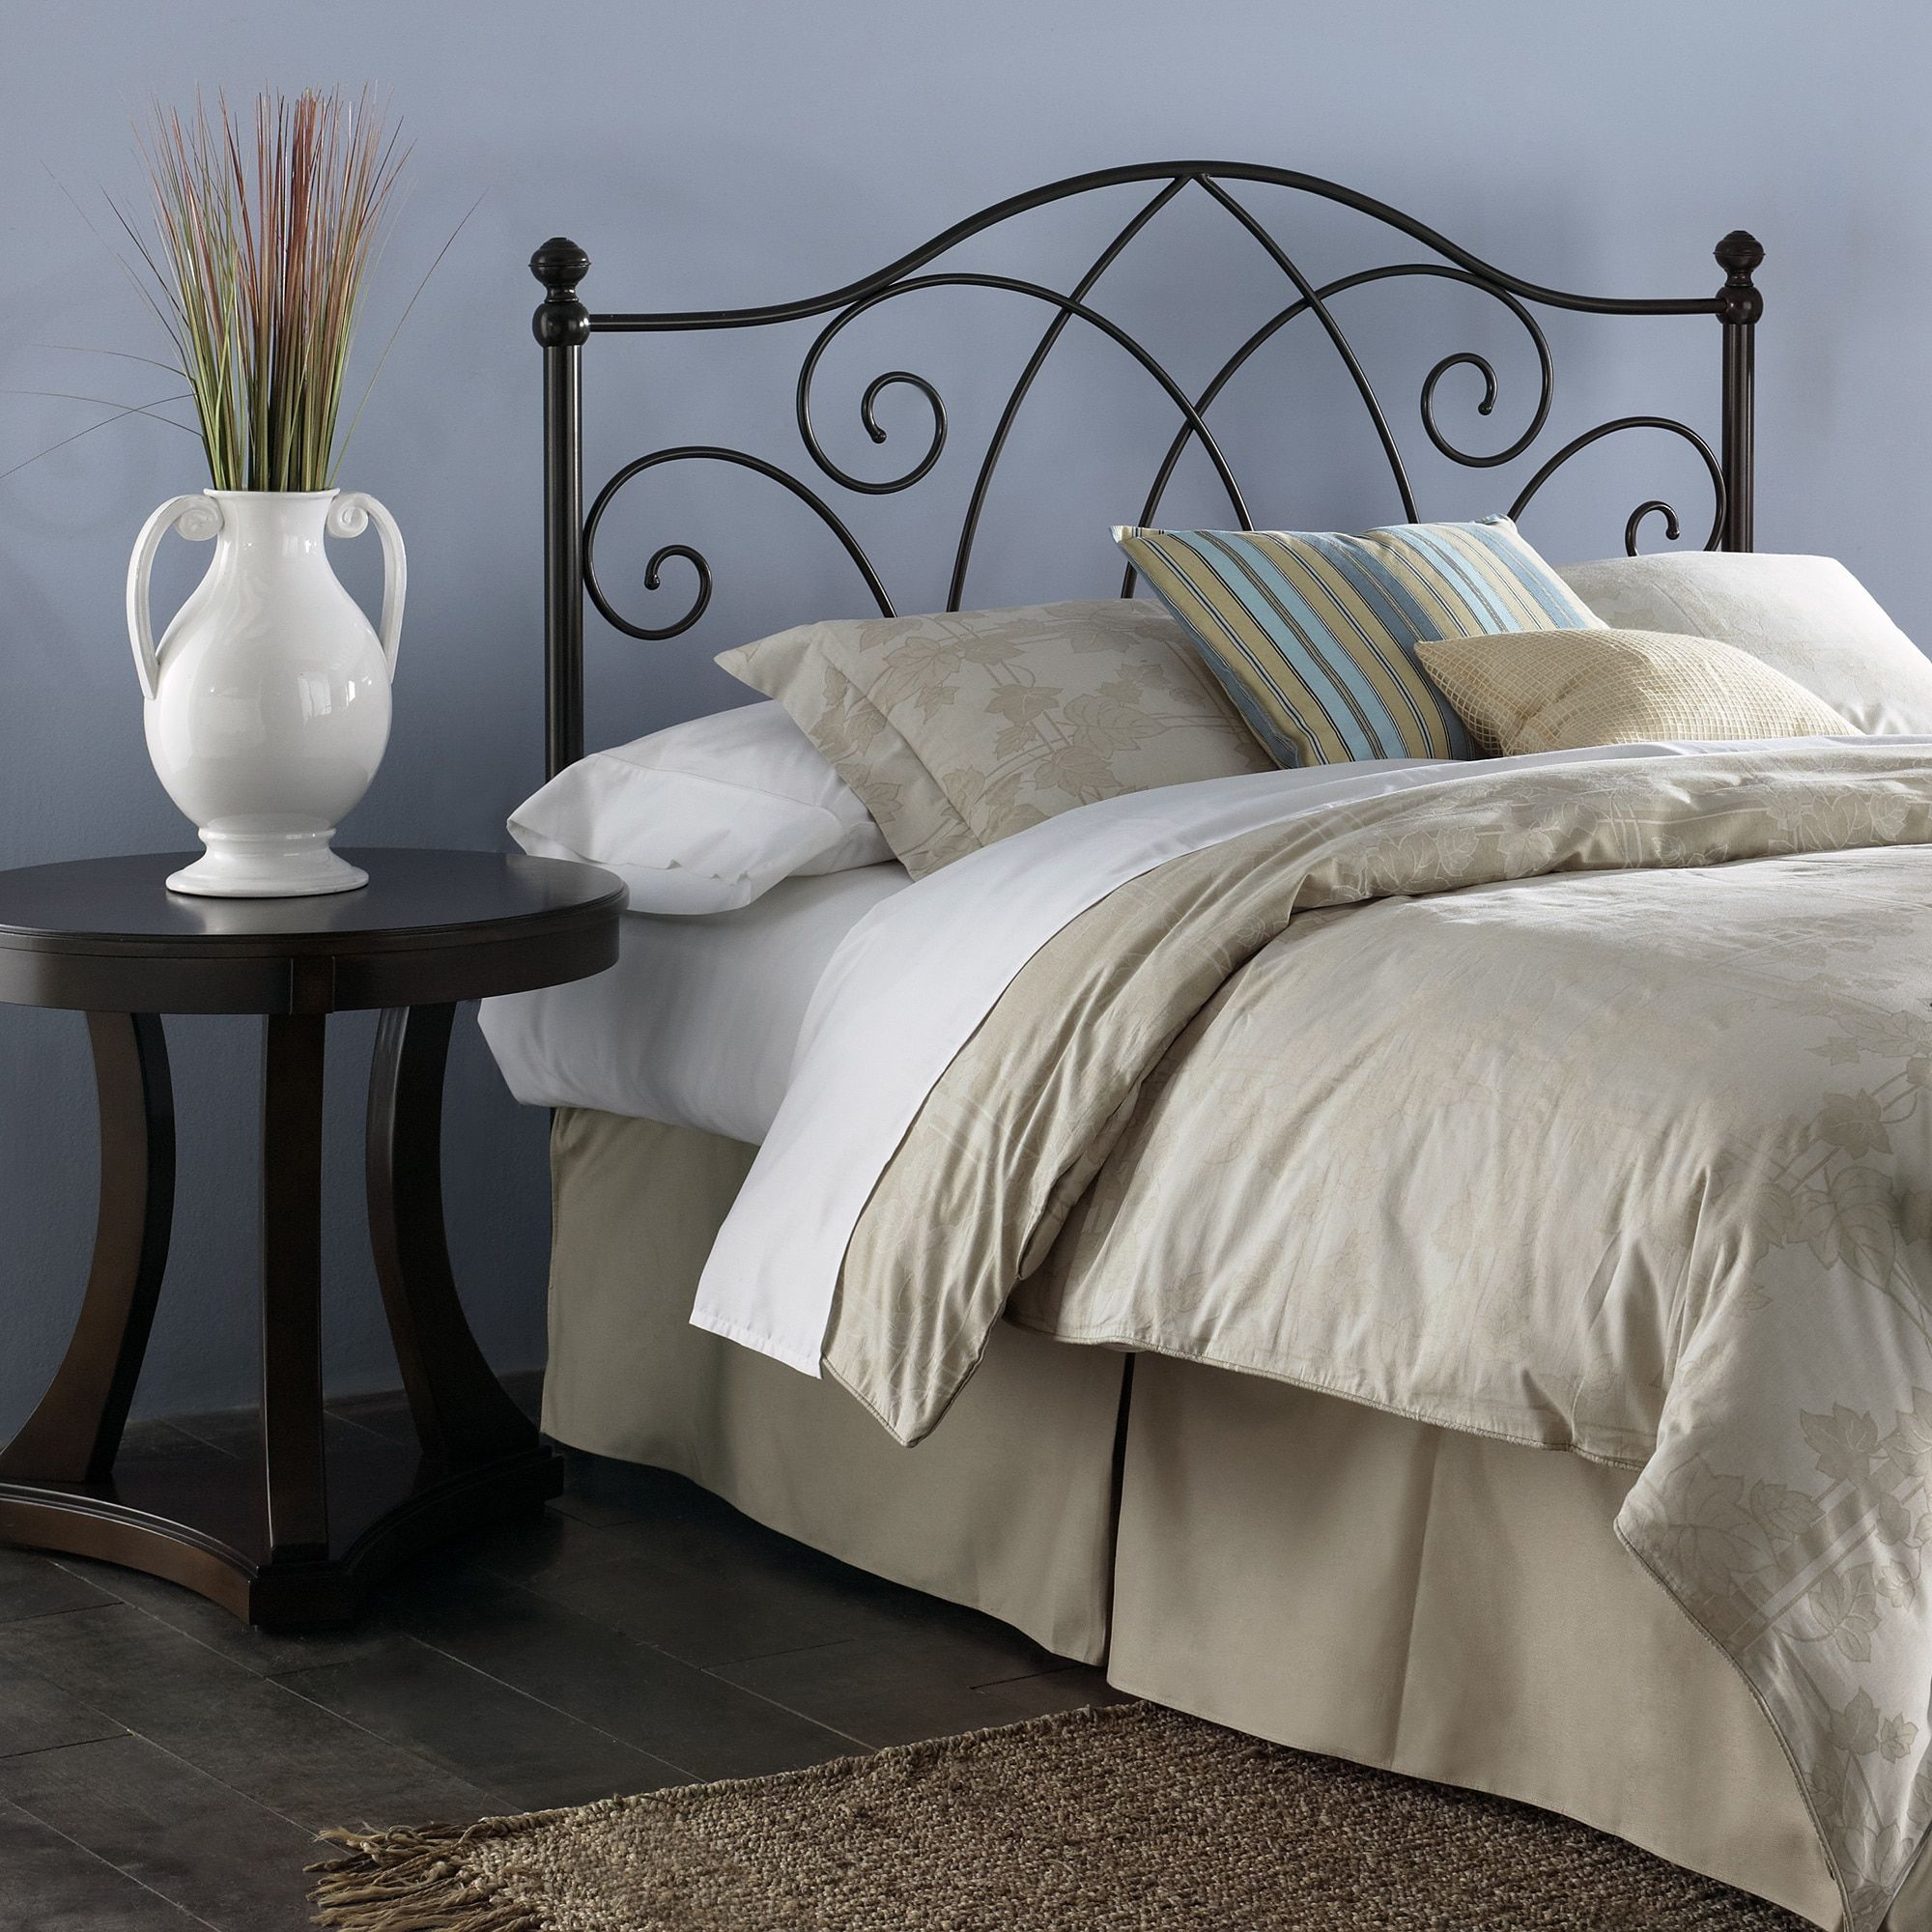 Fashion Bed Group Deland Metal Headboard with Curved Grill Design